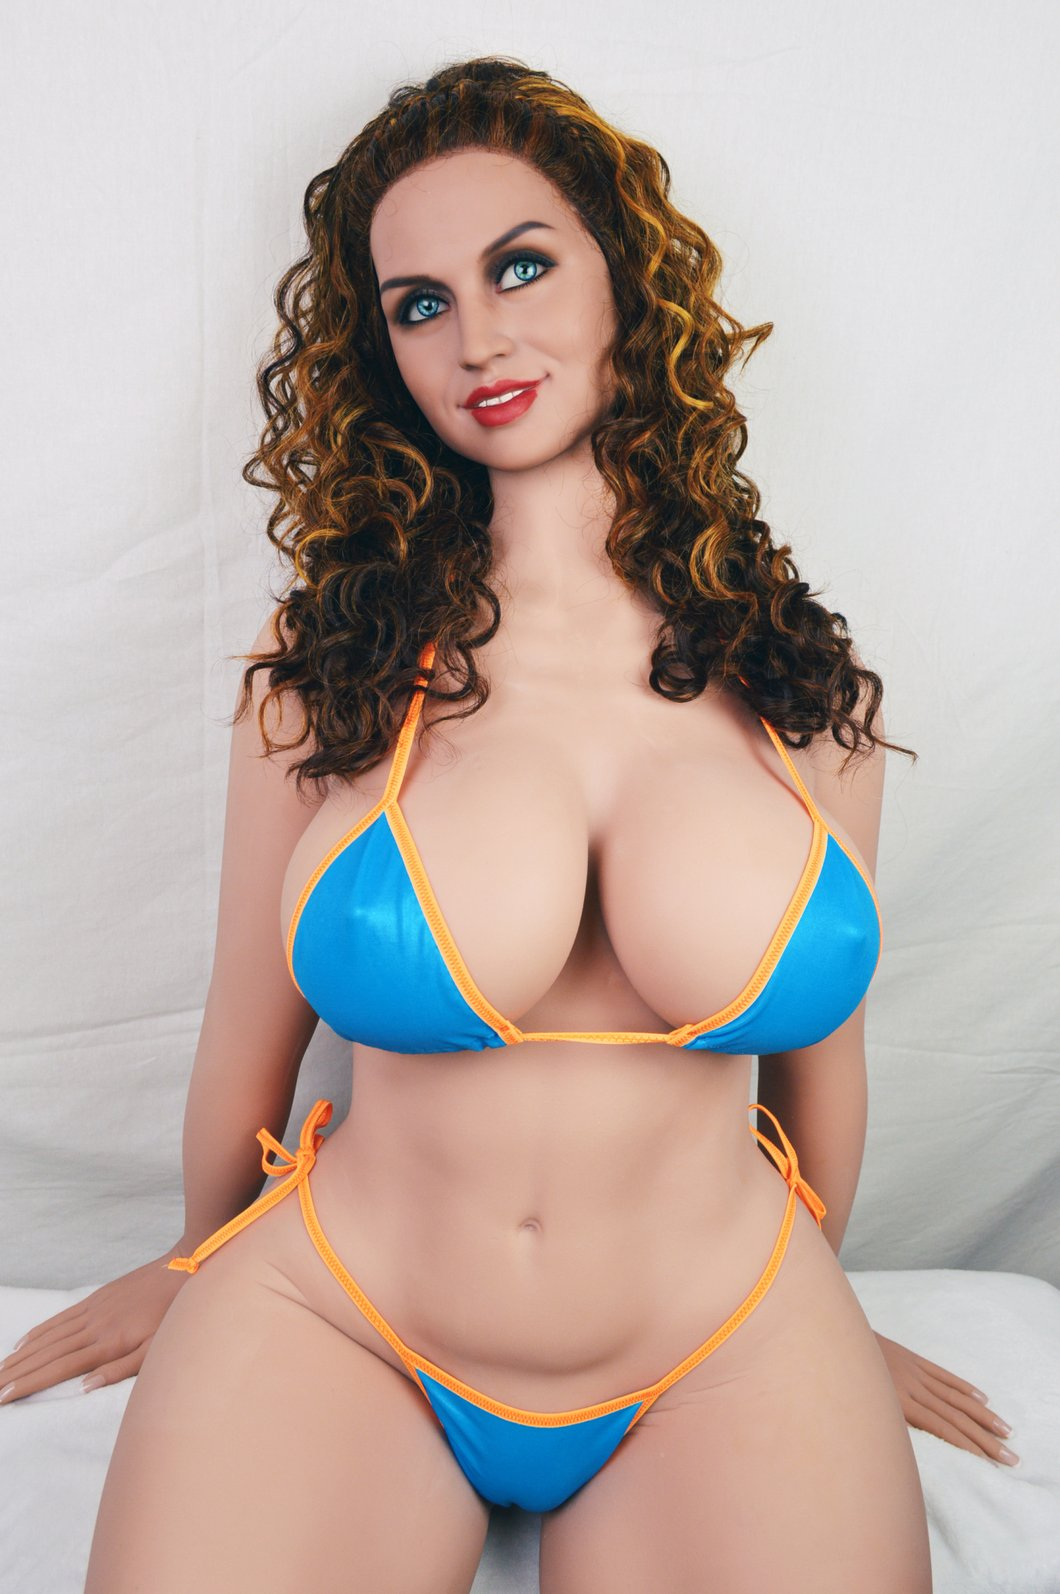 frances 163cm brown hair curvy big boobs athletic tpe wm bbw sex doll(11)